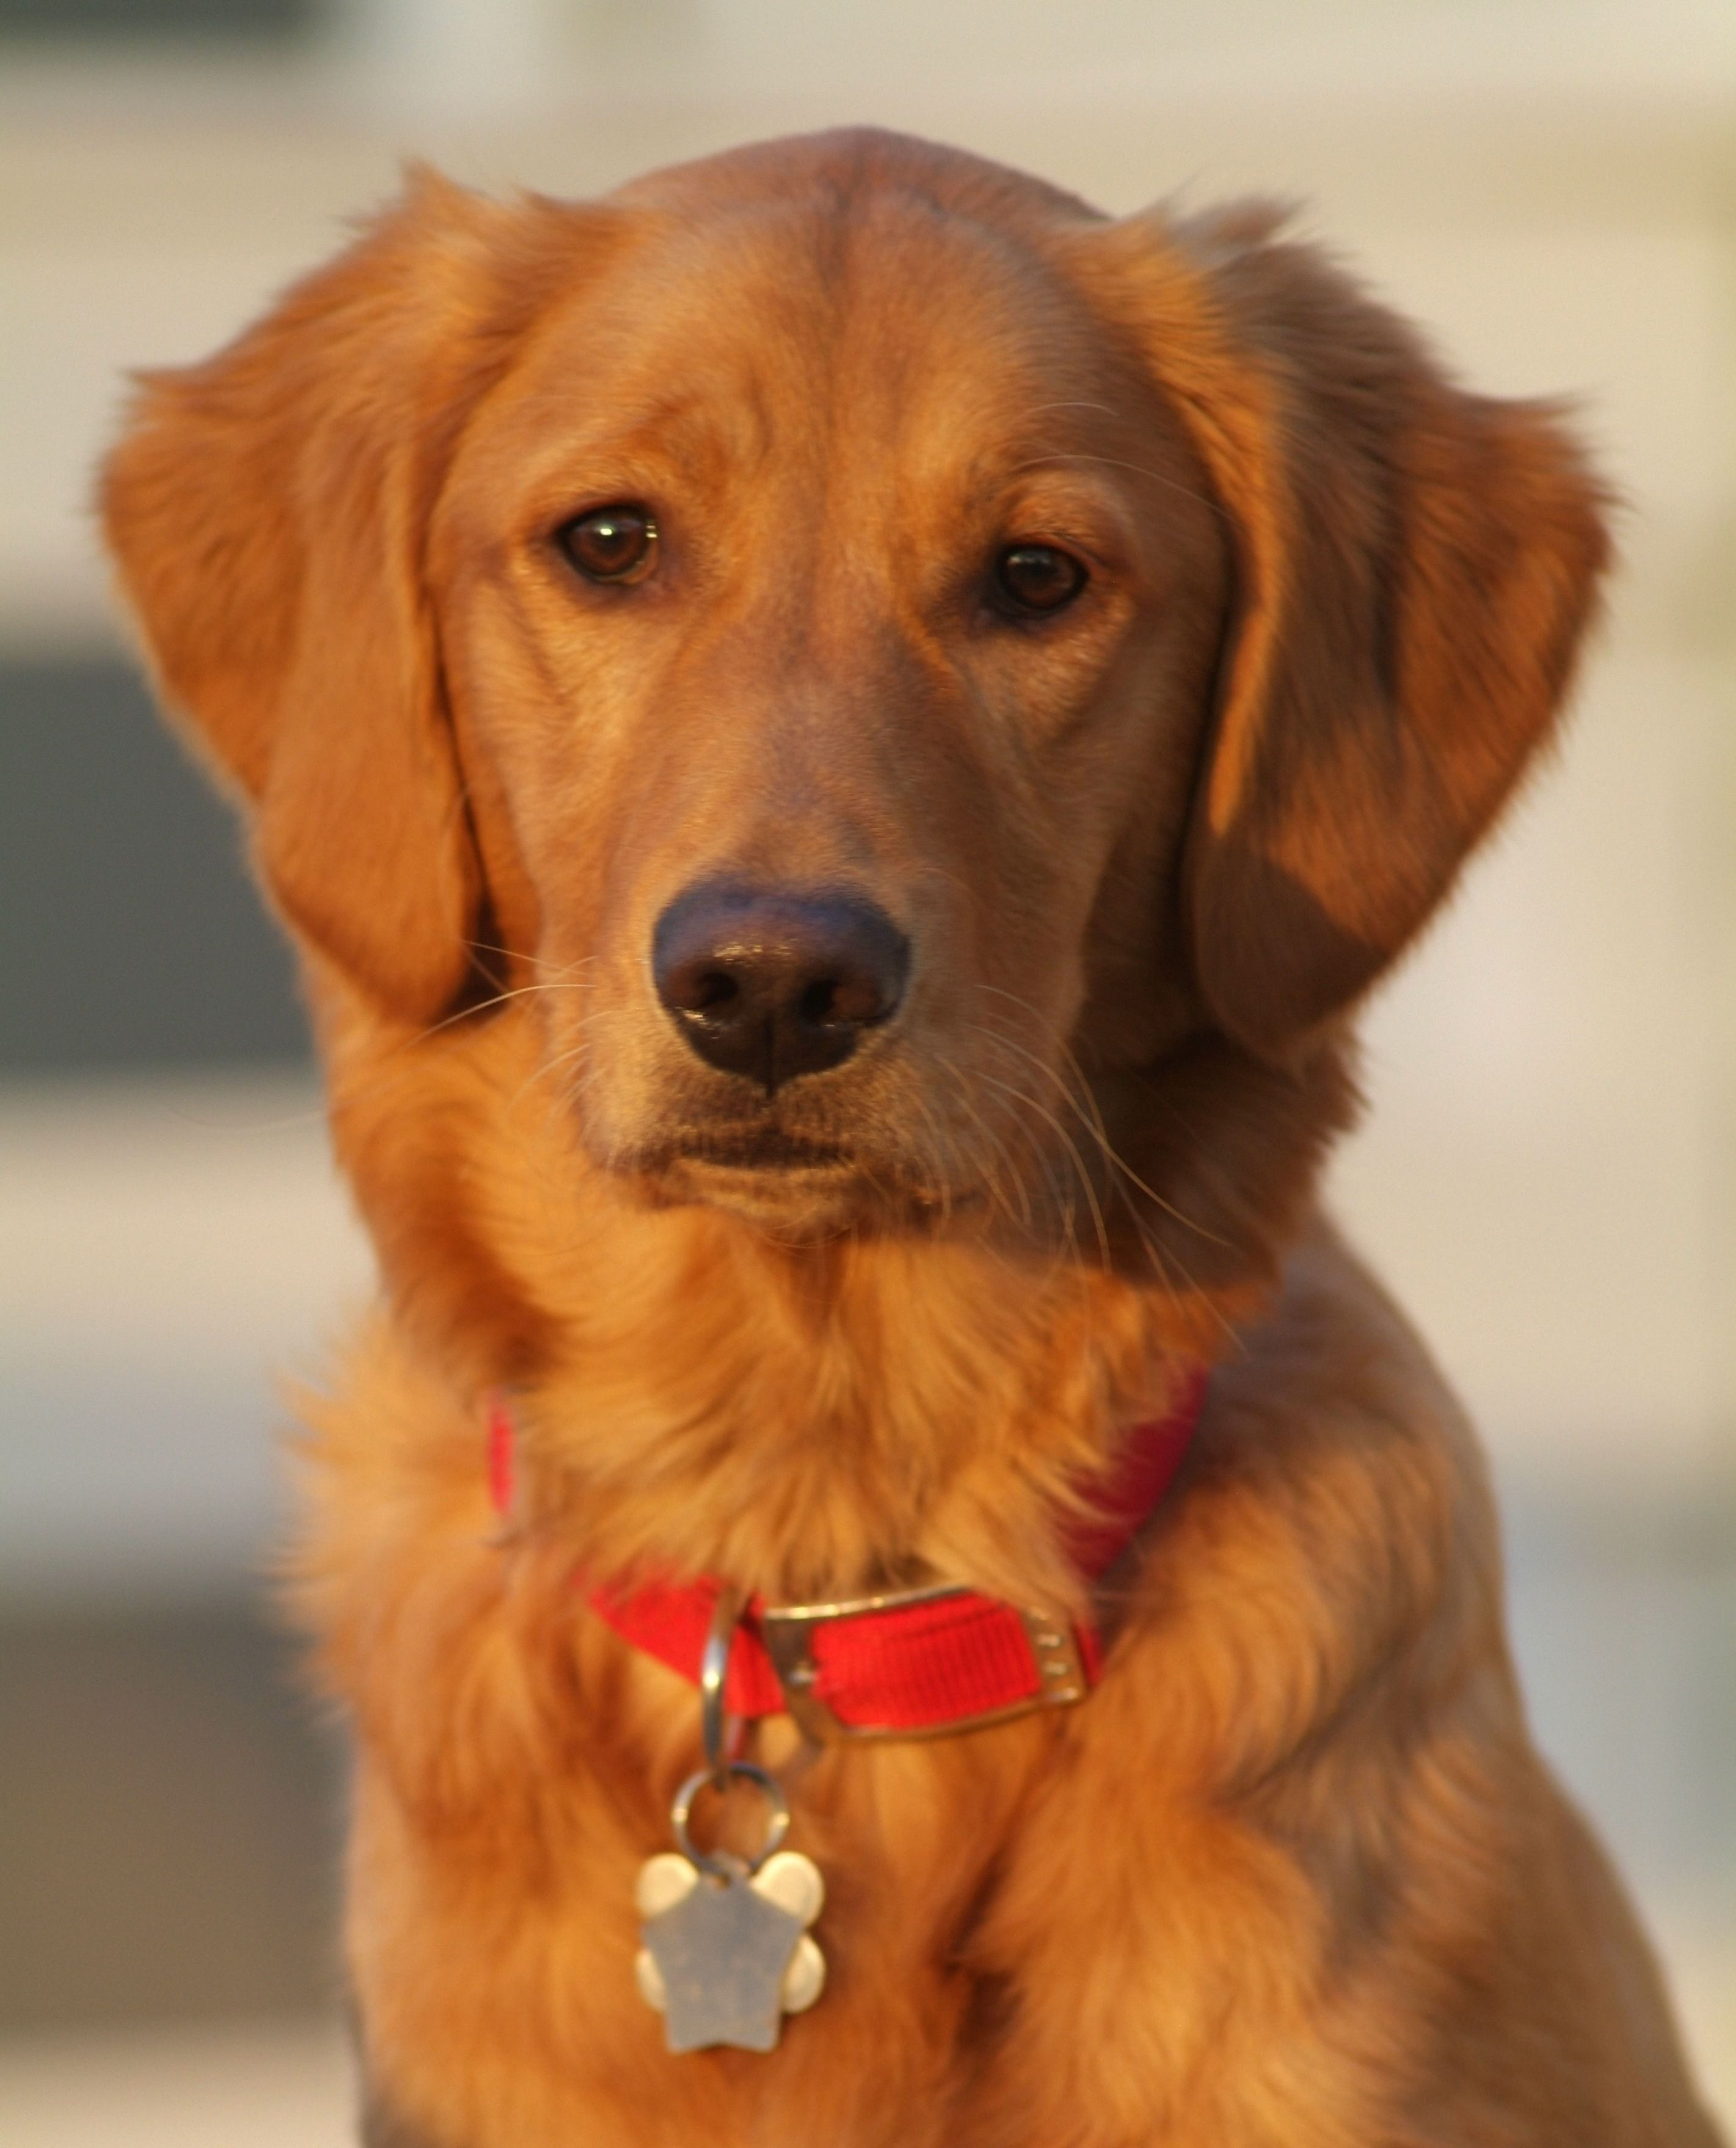 Finley, the Golden Retriever. (With images) Golden